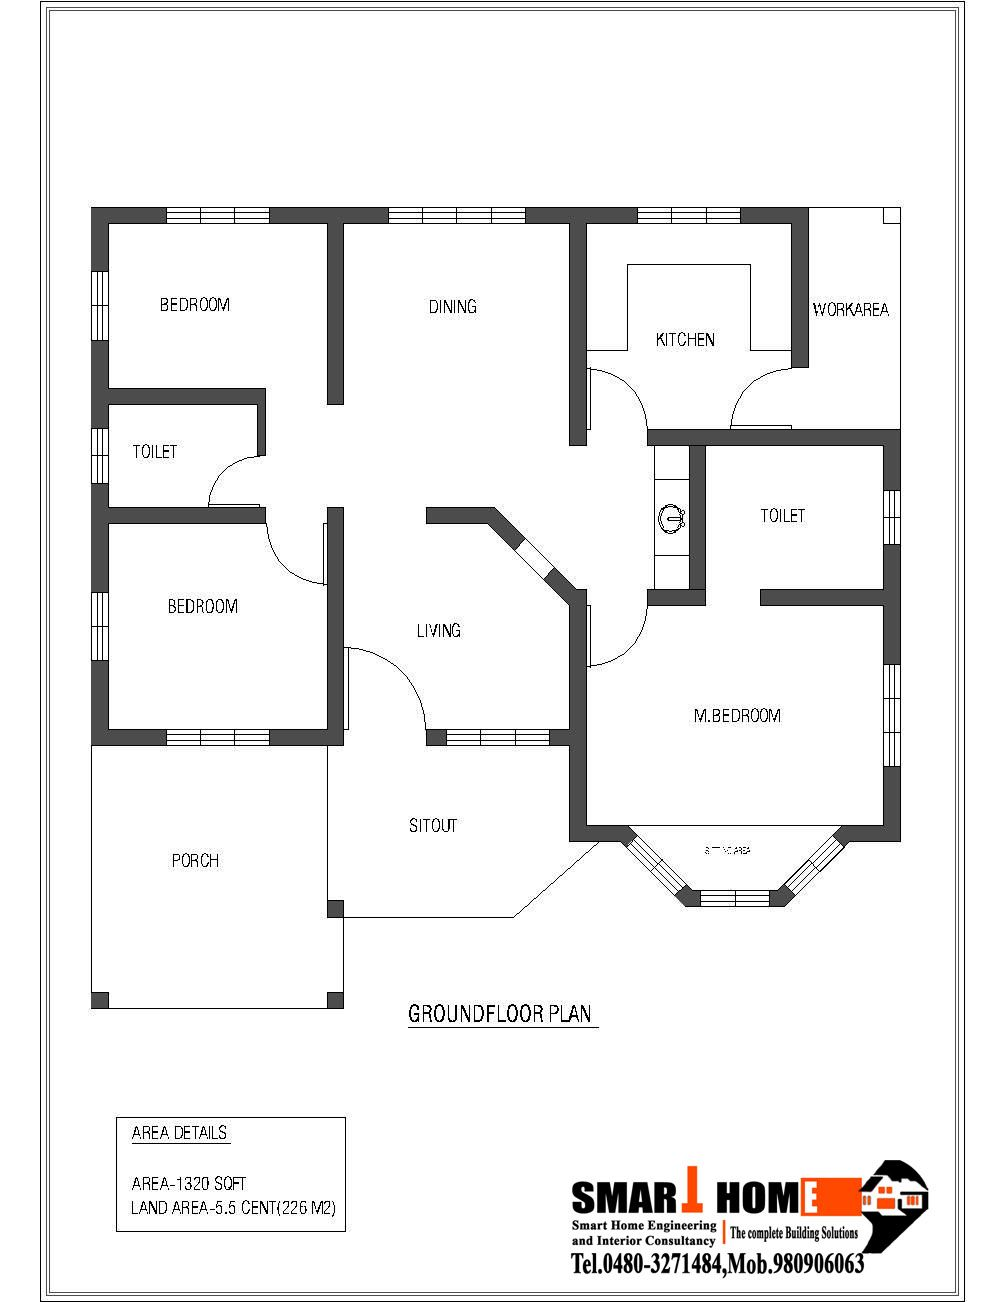 1320 sqft kerala style 3 bedroom house plan from smart for House plan design kerala style